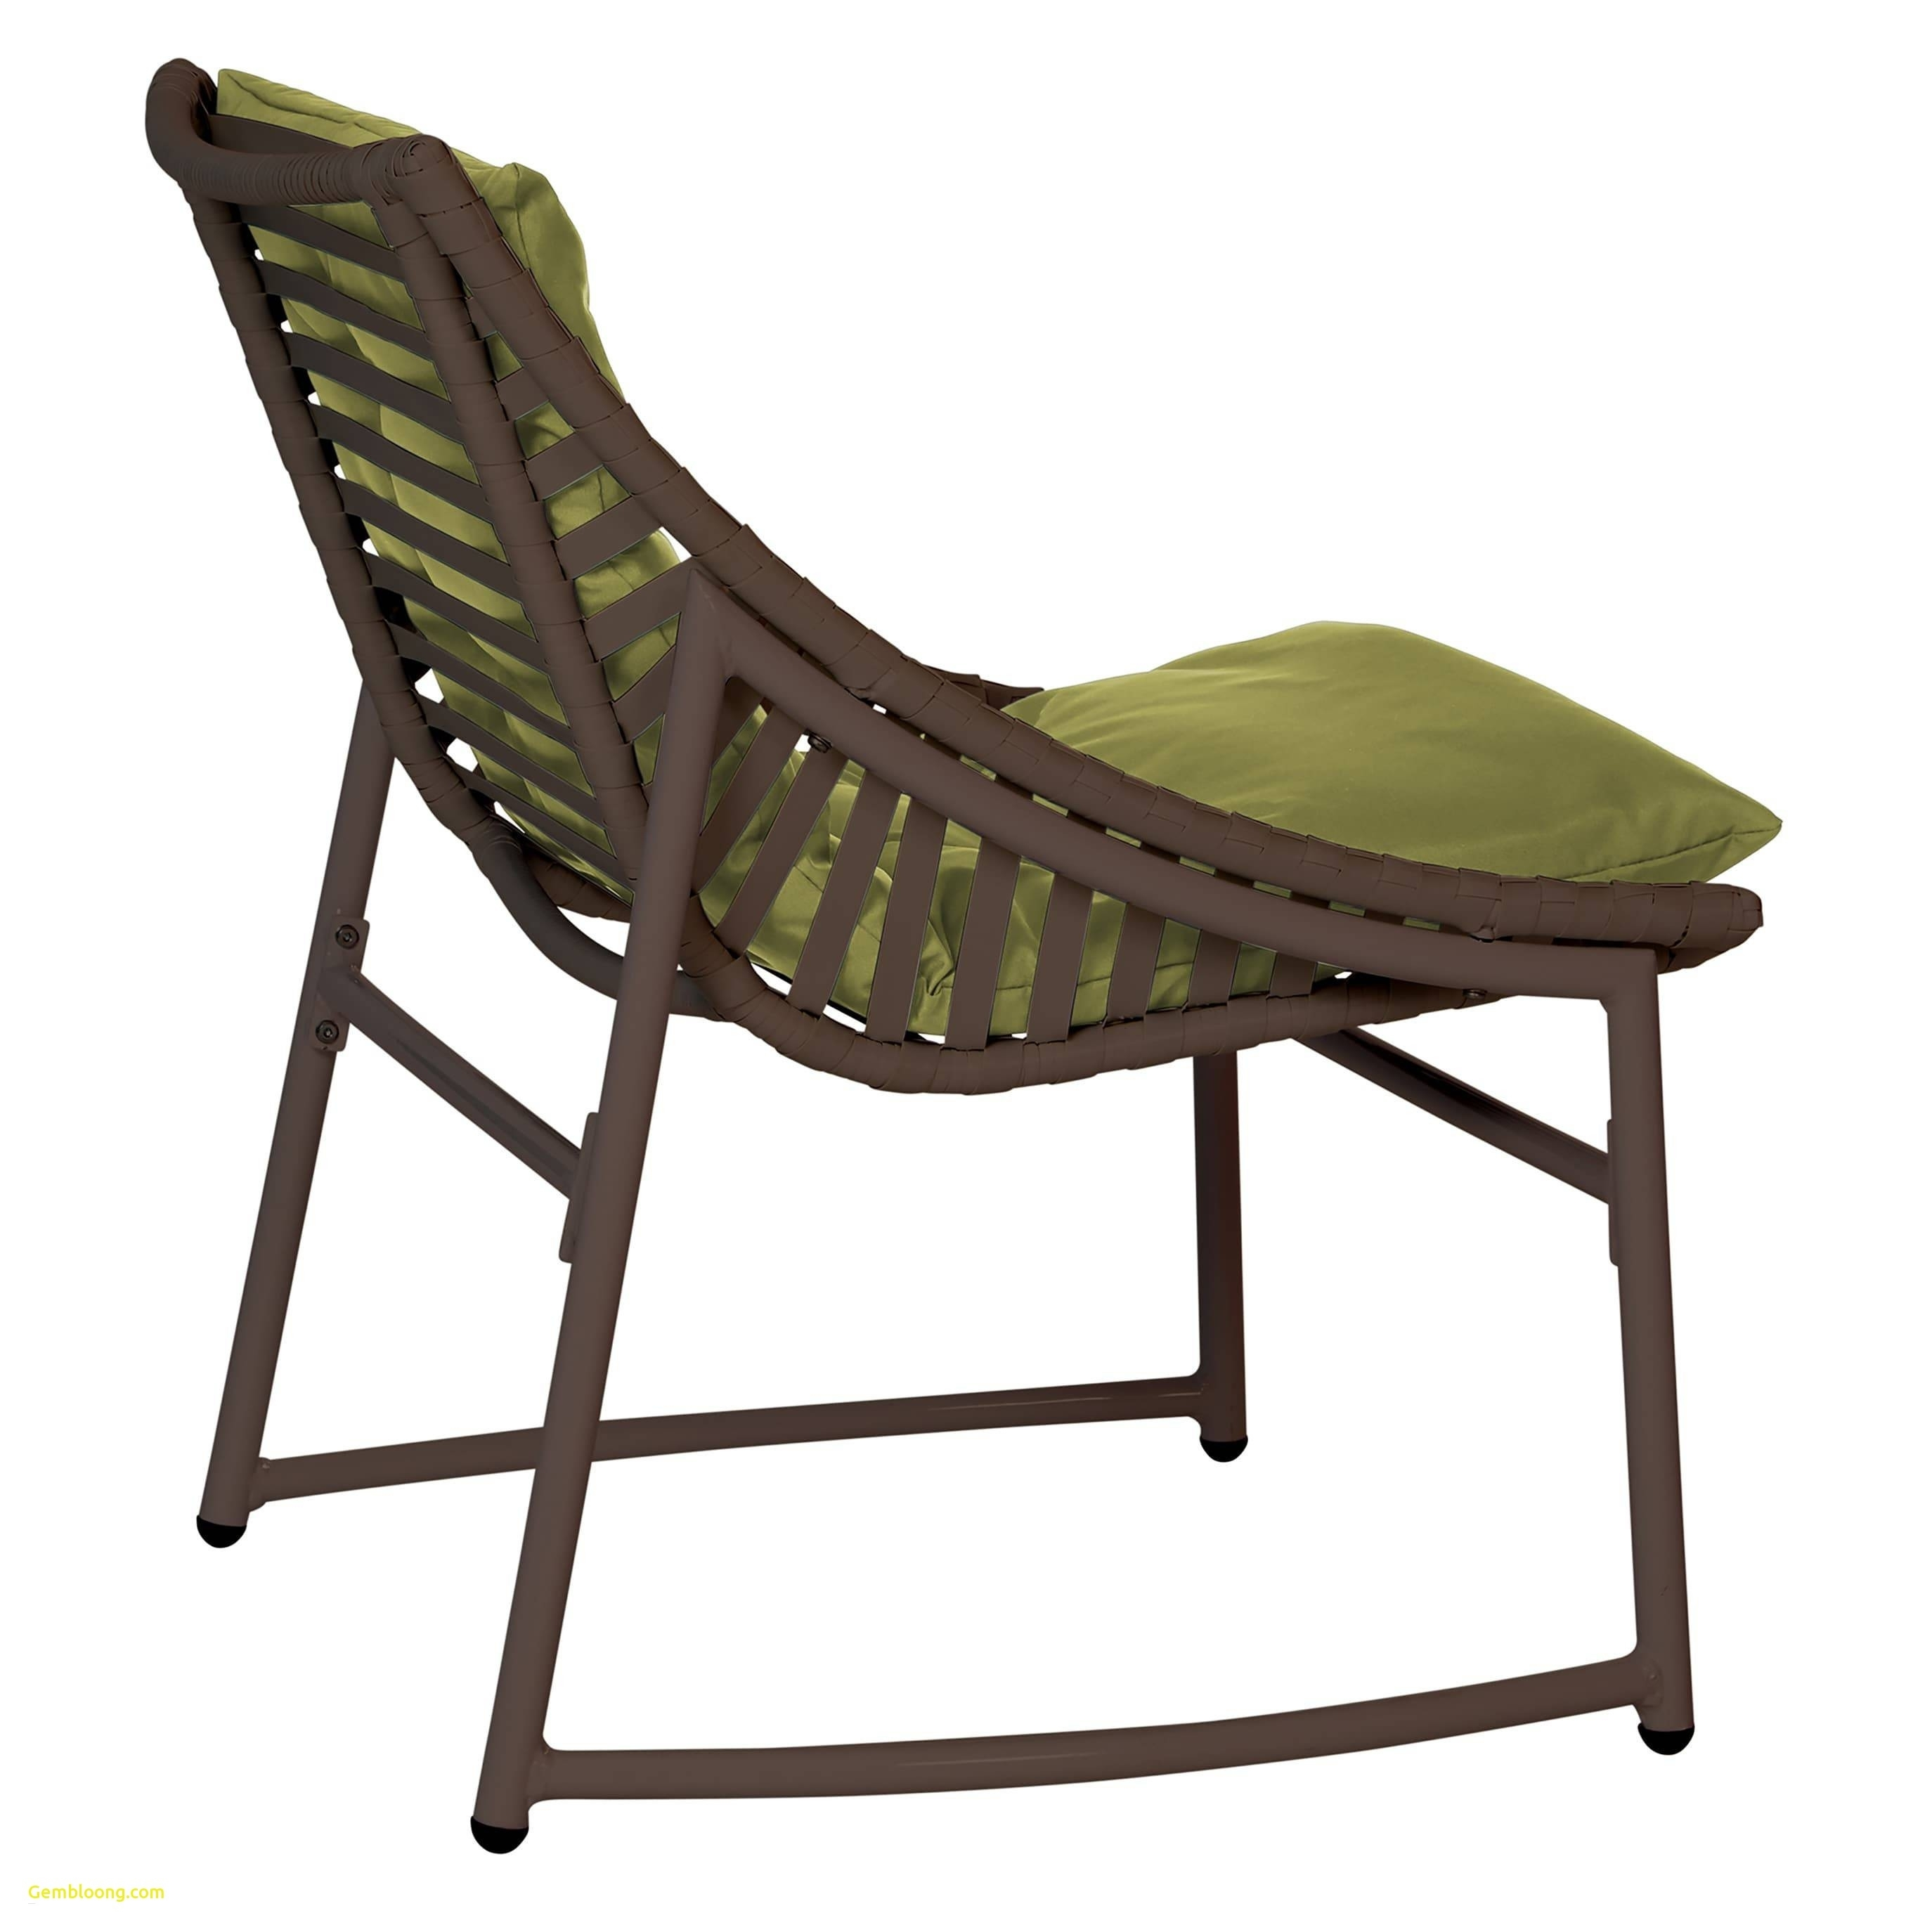 Chair : Patio Rocking Chairs Top Chairs That Spin' S Chair Panton In Patio Rocking Chairs With Ottoman (#3 of 15)